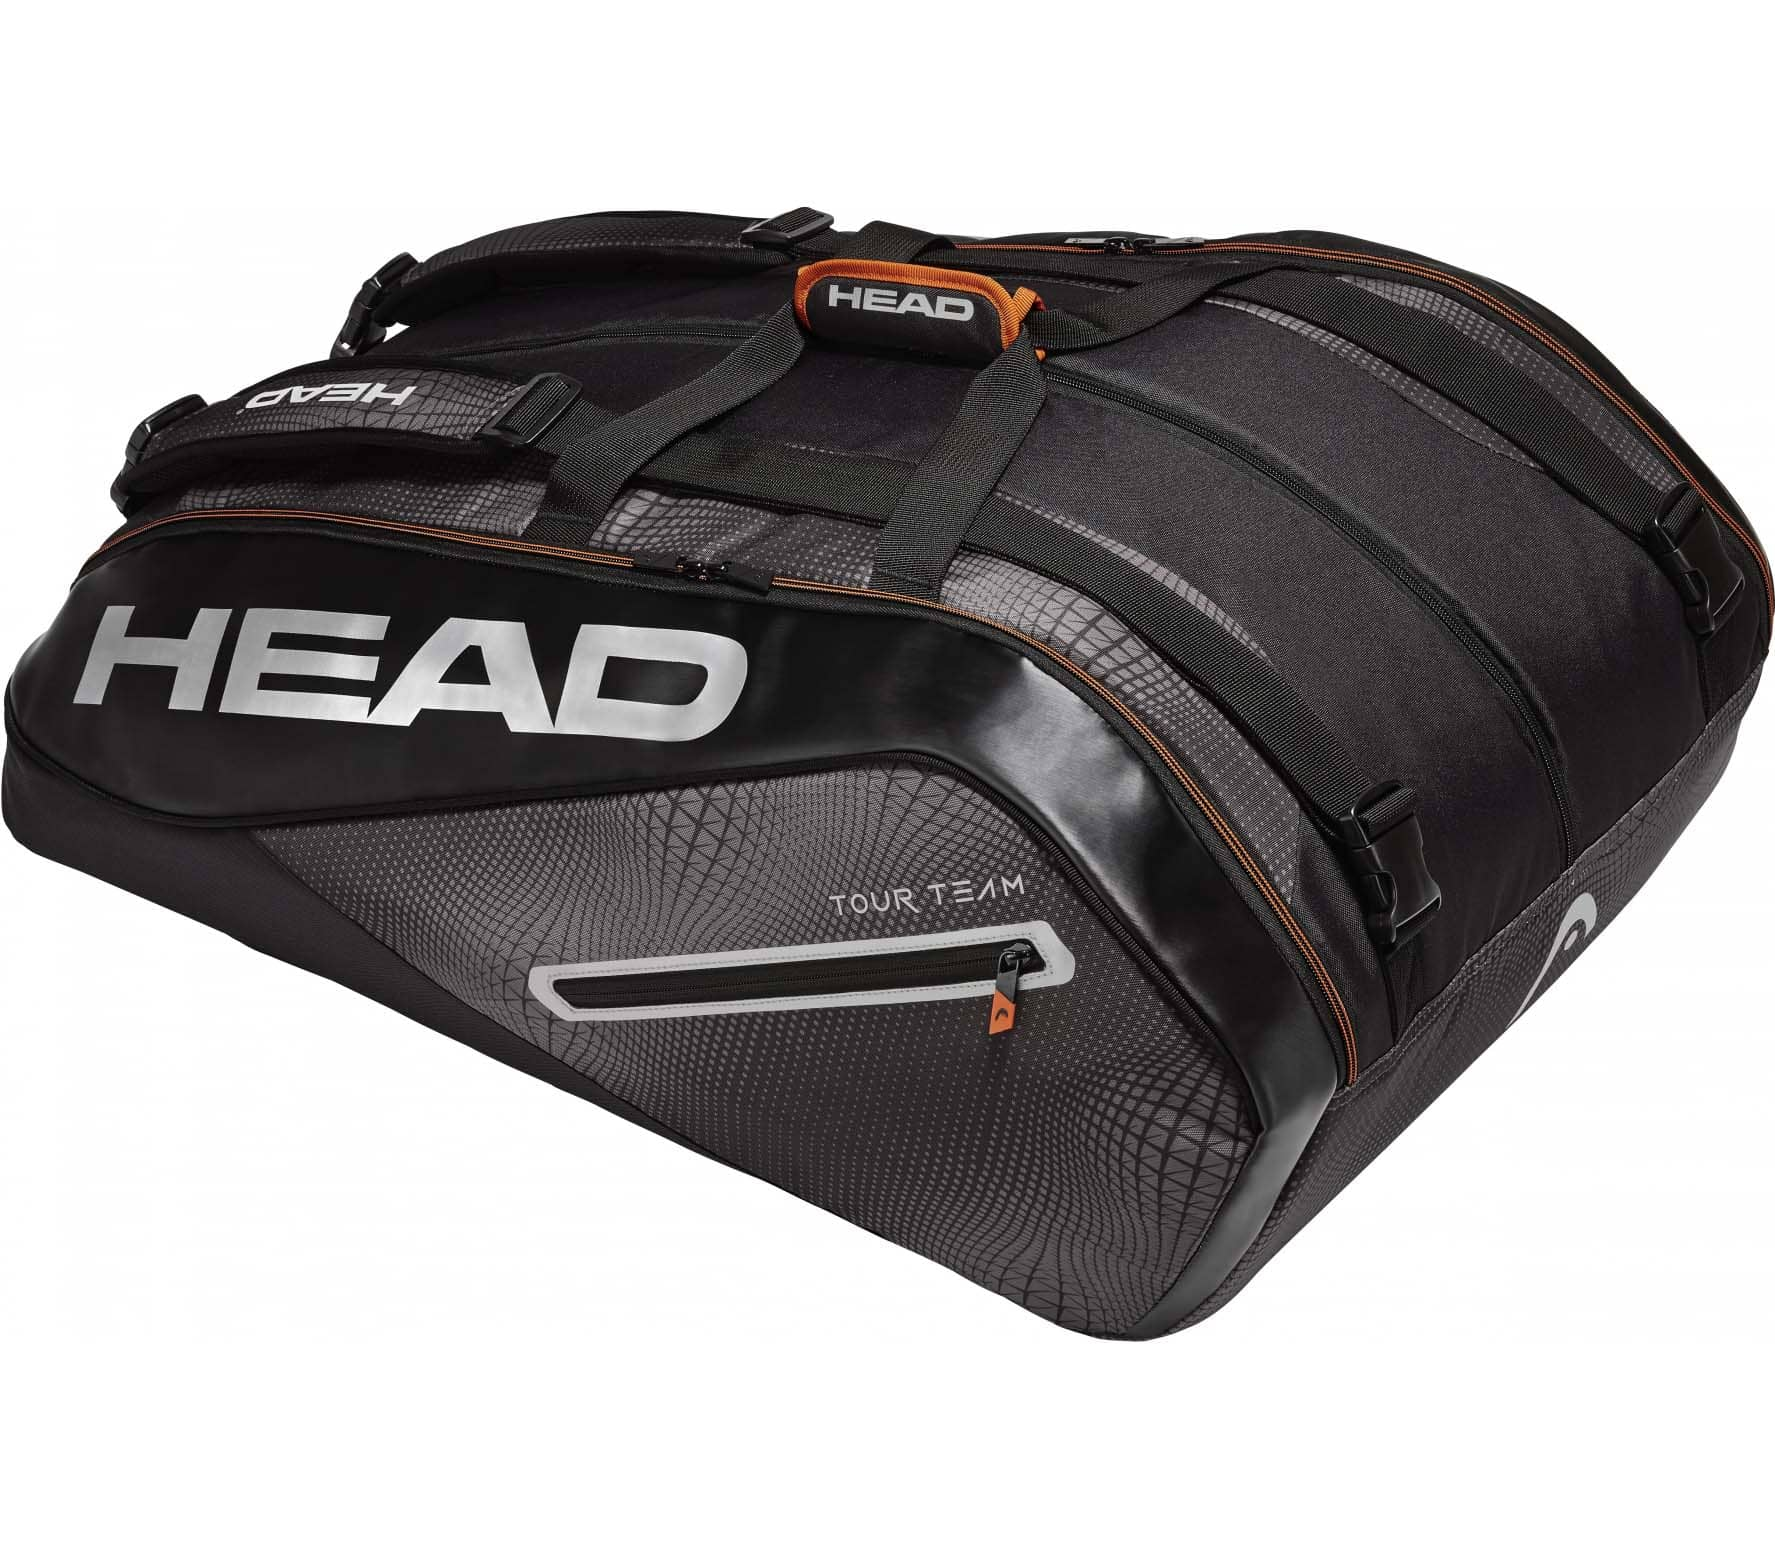 Head Tour Team 15R Megacombi Tennistasche black